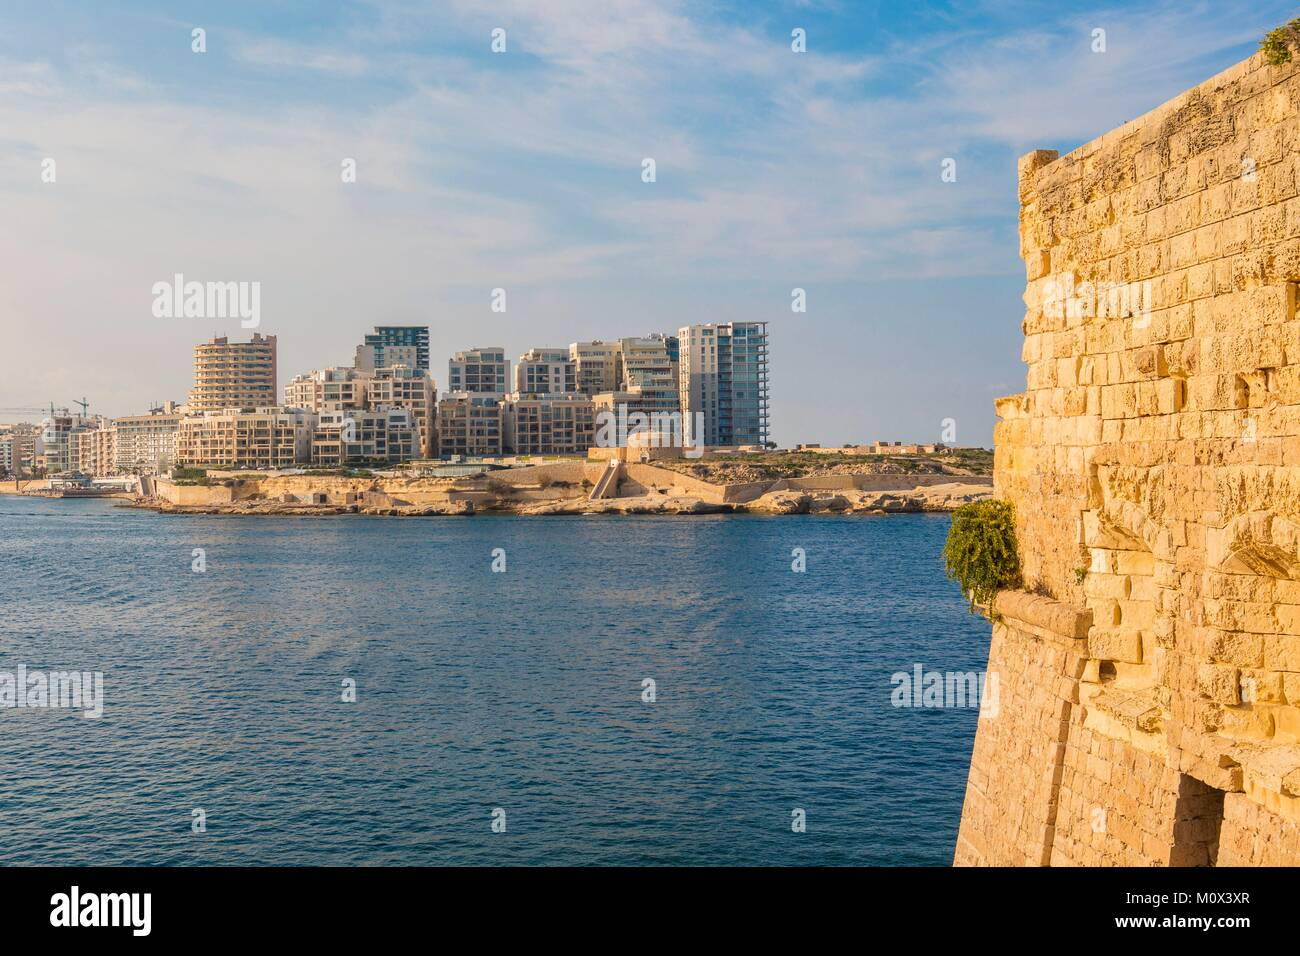 Malta,Valletta,listed as World Heritage by UNESCO,the buildings of Sliema - Stock Image